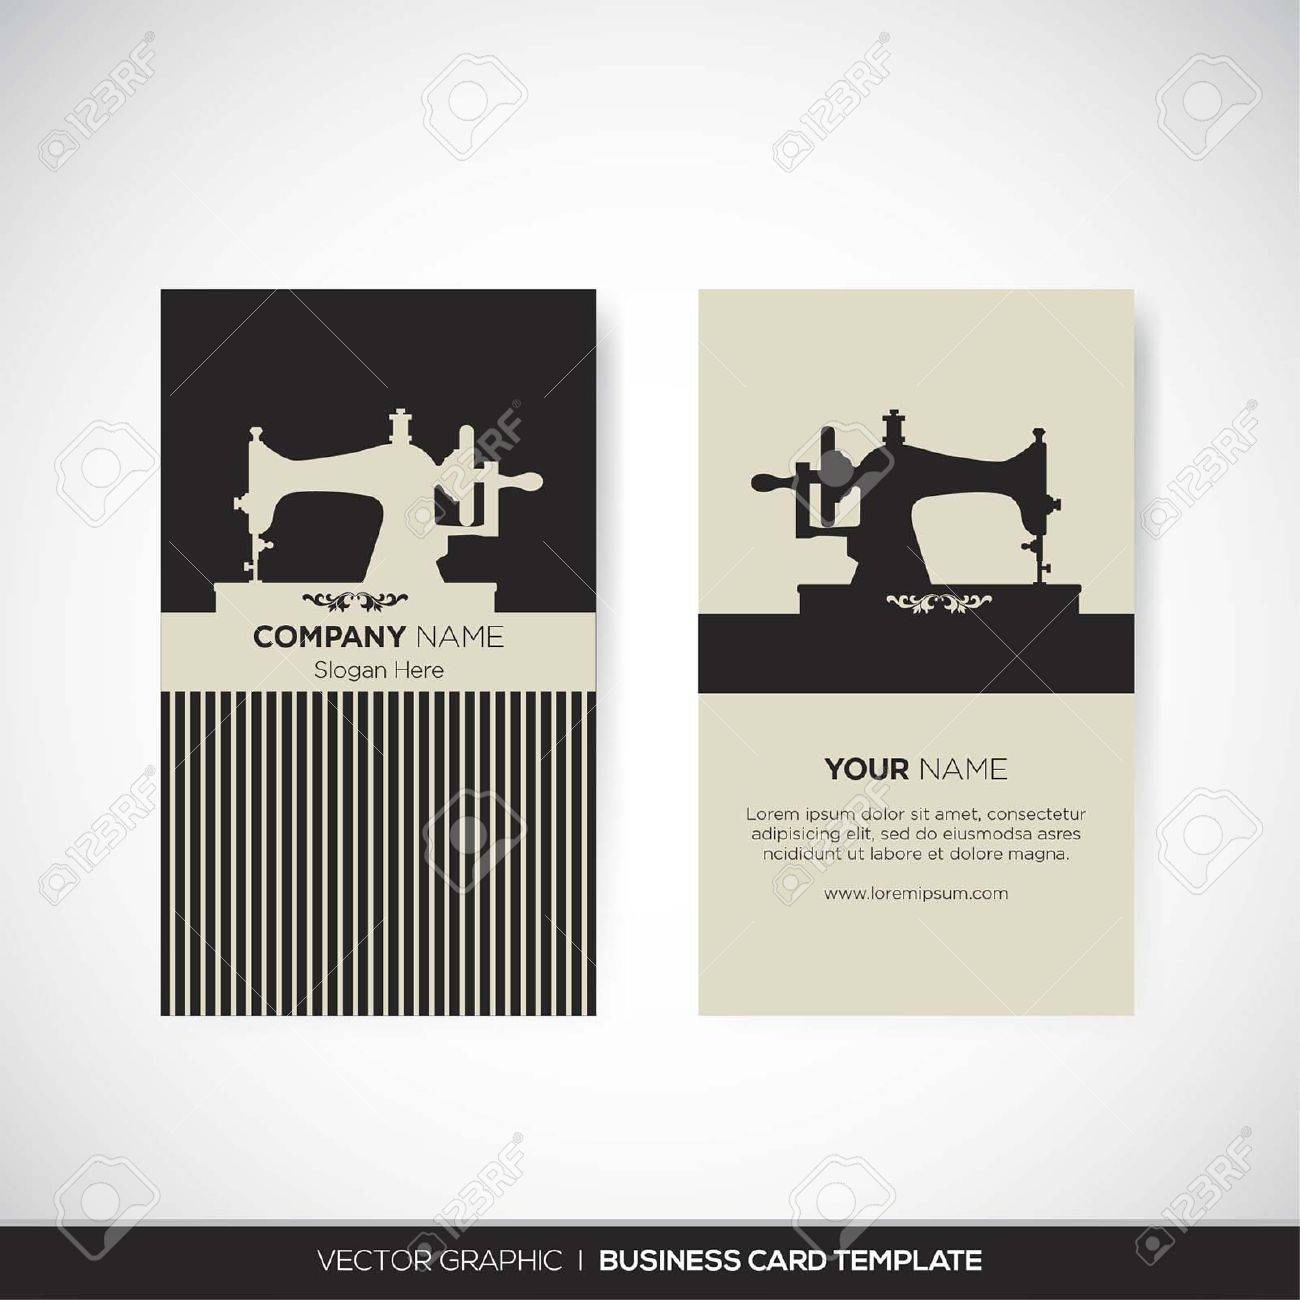 Tailor business card image collections free business cards business card template stock word report template blank bol form business card template royalty free cliparts magicingreecefo Image collections